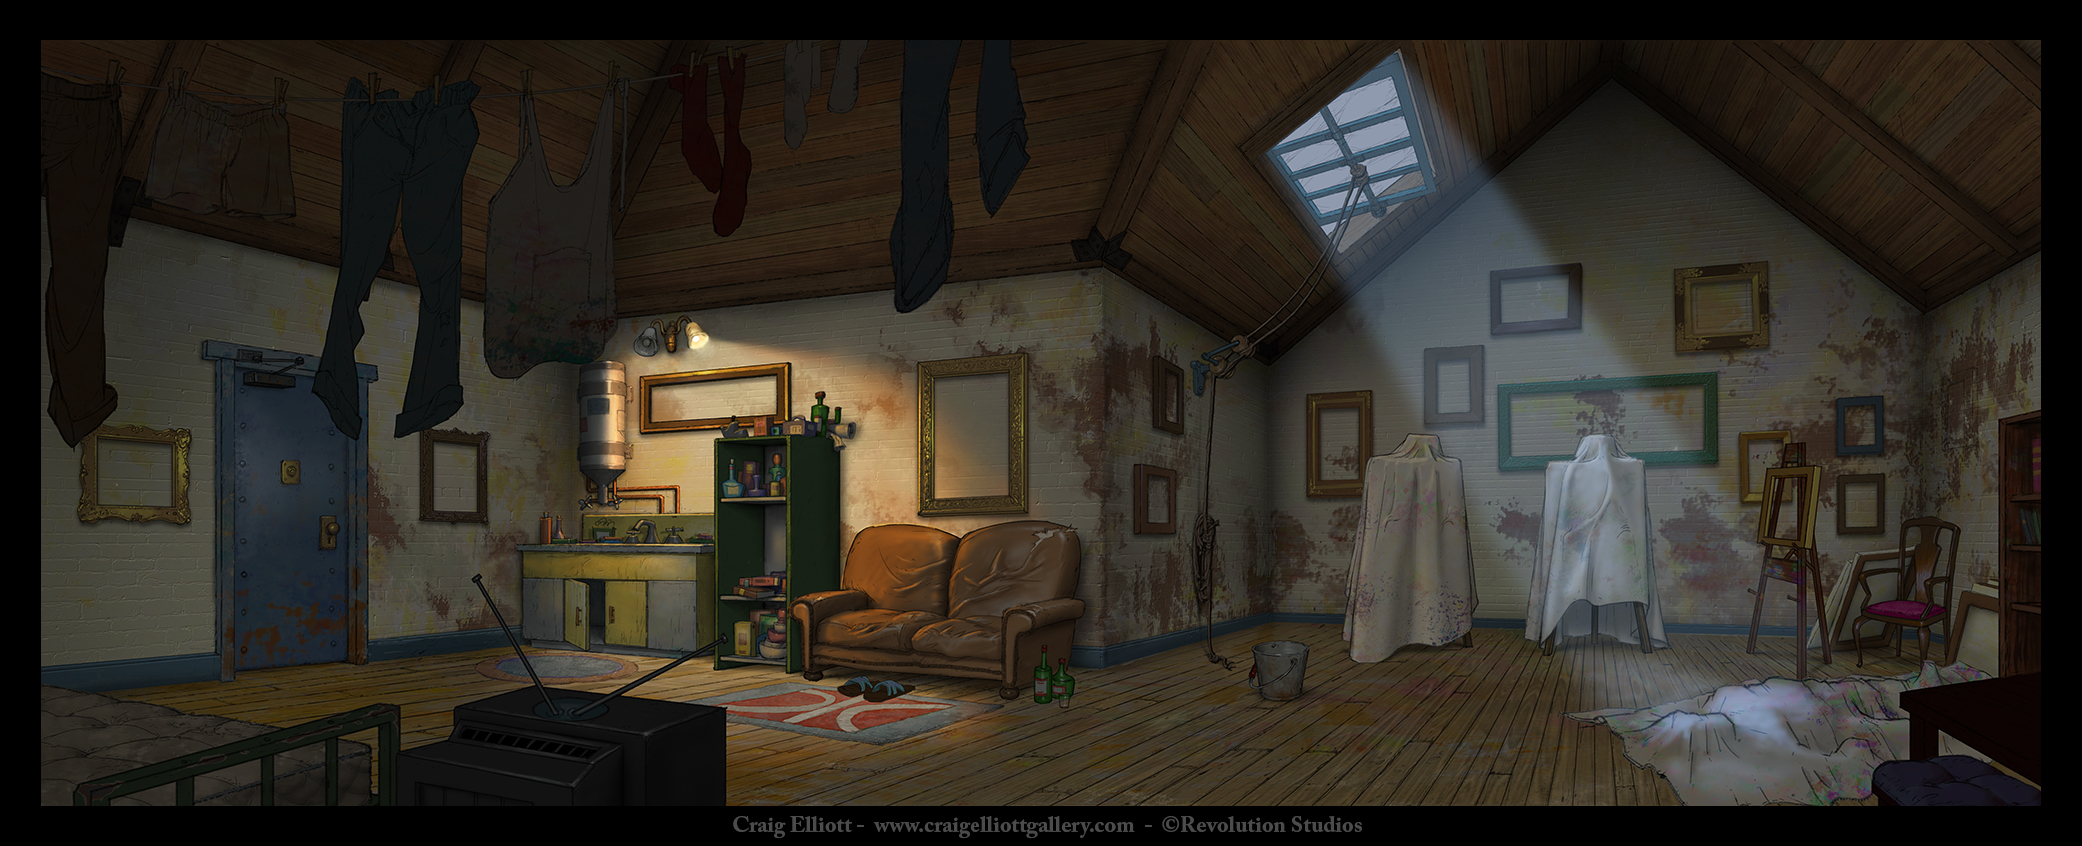 Hobbstudio_Upstairs_color_v1.jpg